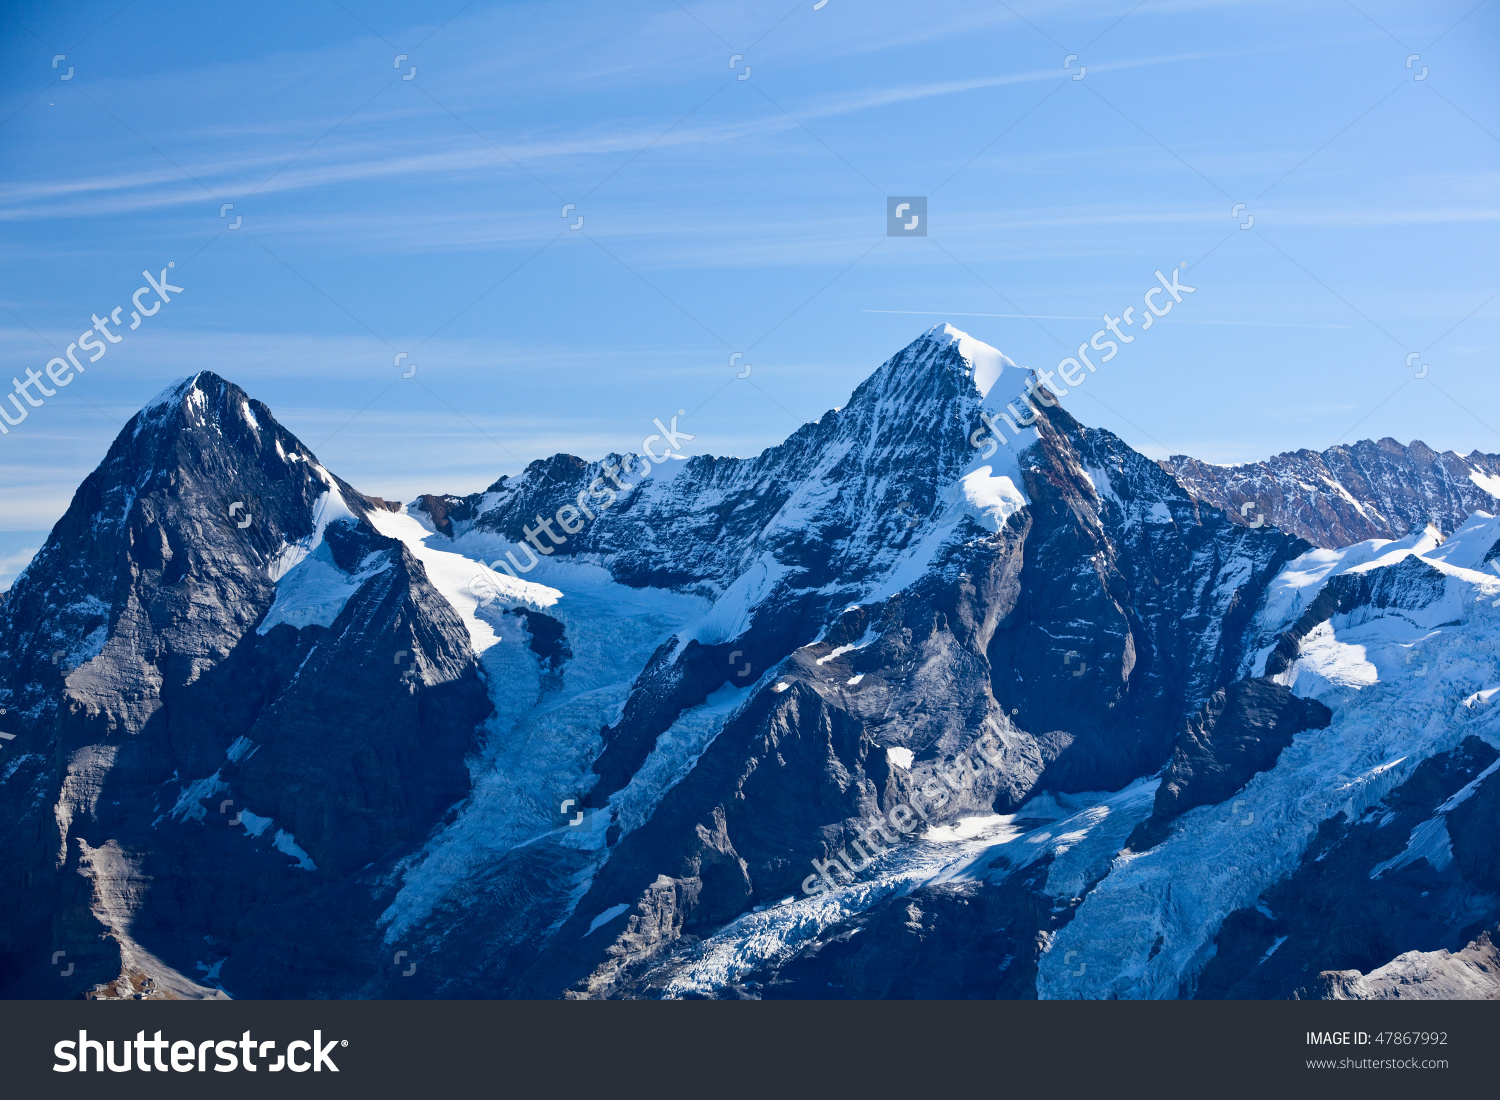 Schilthorn Mountain clipart #13, Download drawings